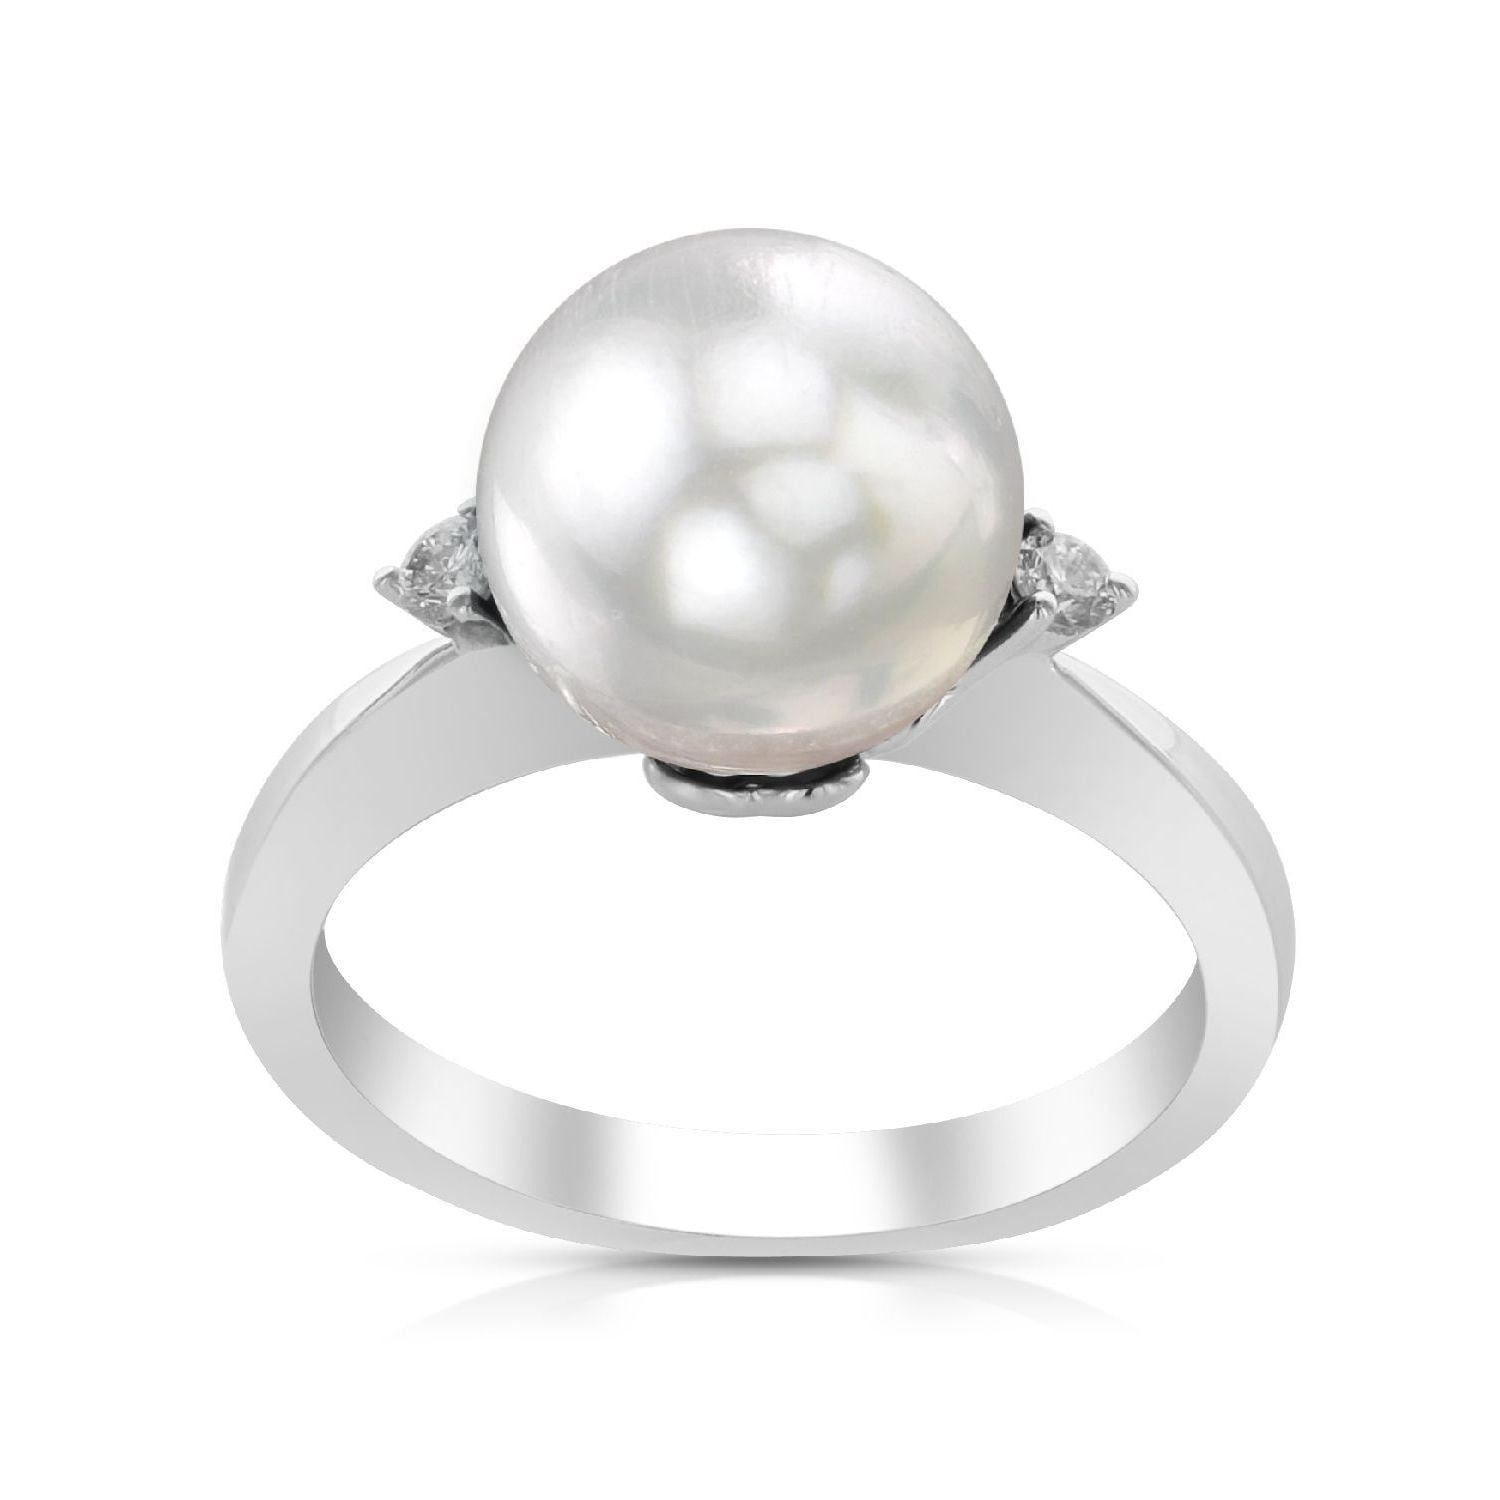 Radiance Pearl 14k White Gold White South Sea Pearl and Diamond Ring (G-H, SI1-SI2) by Overstock